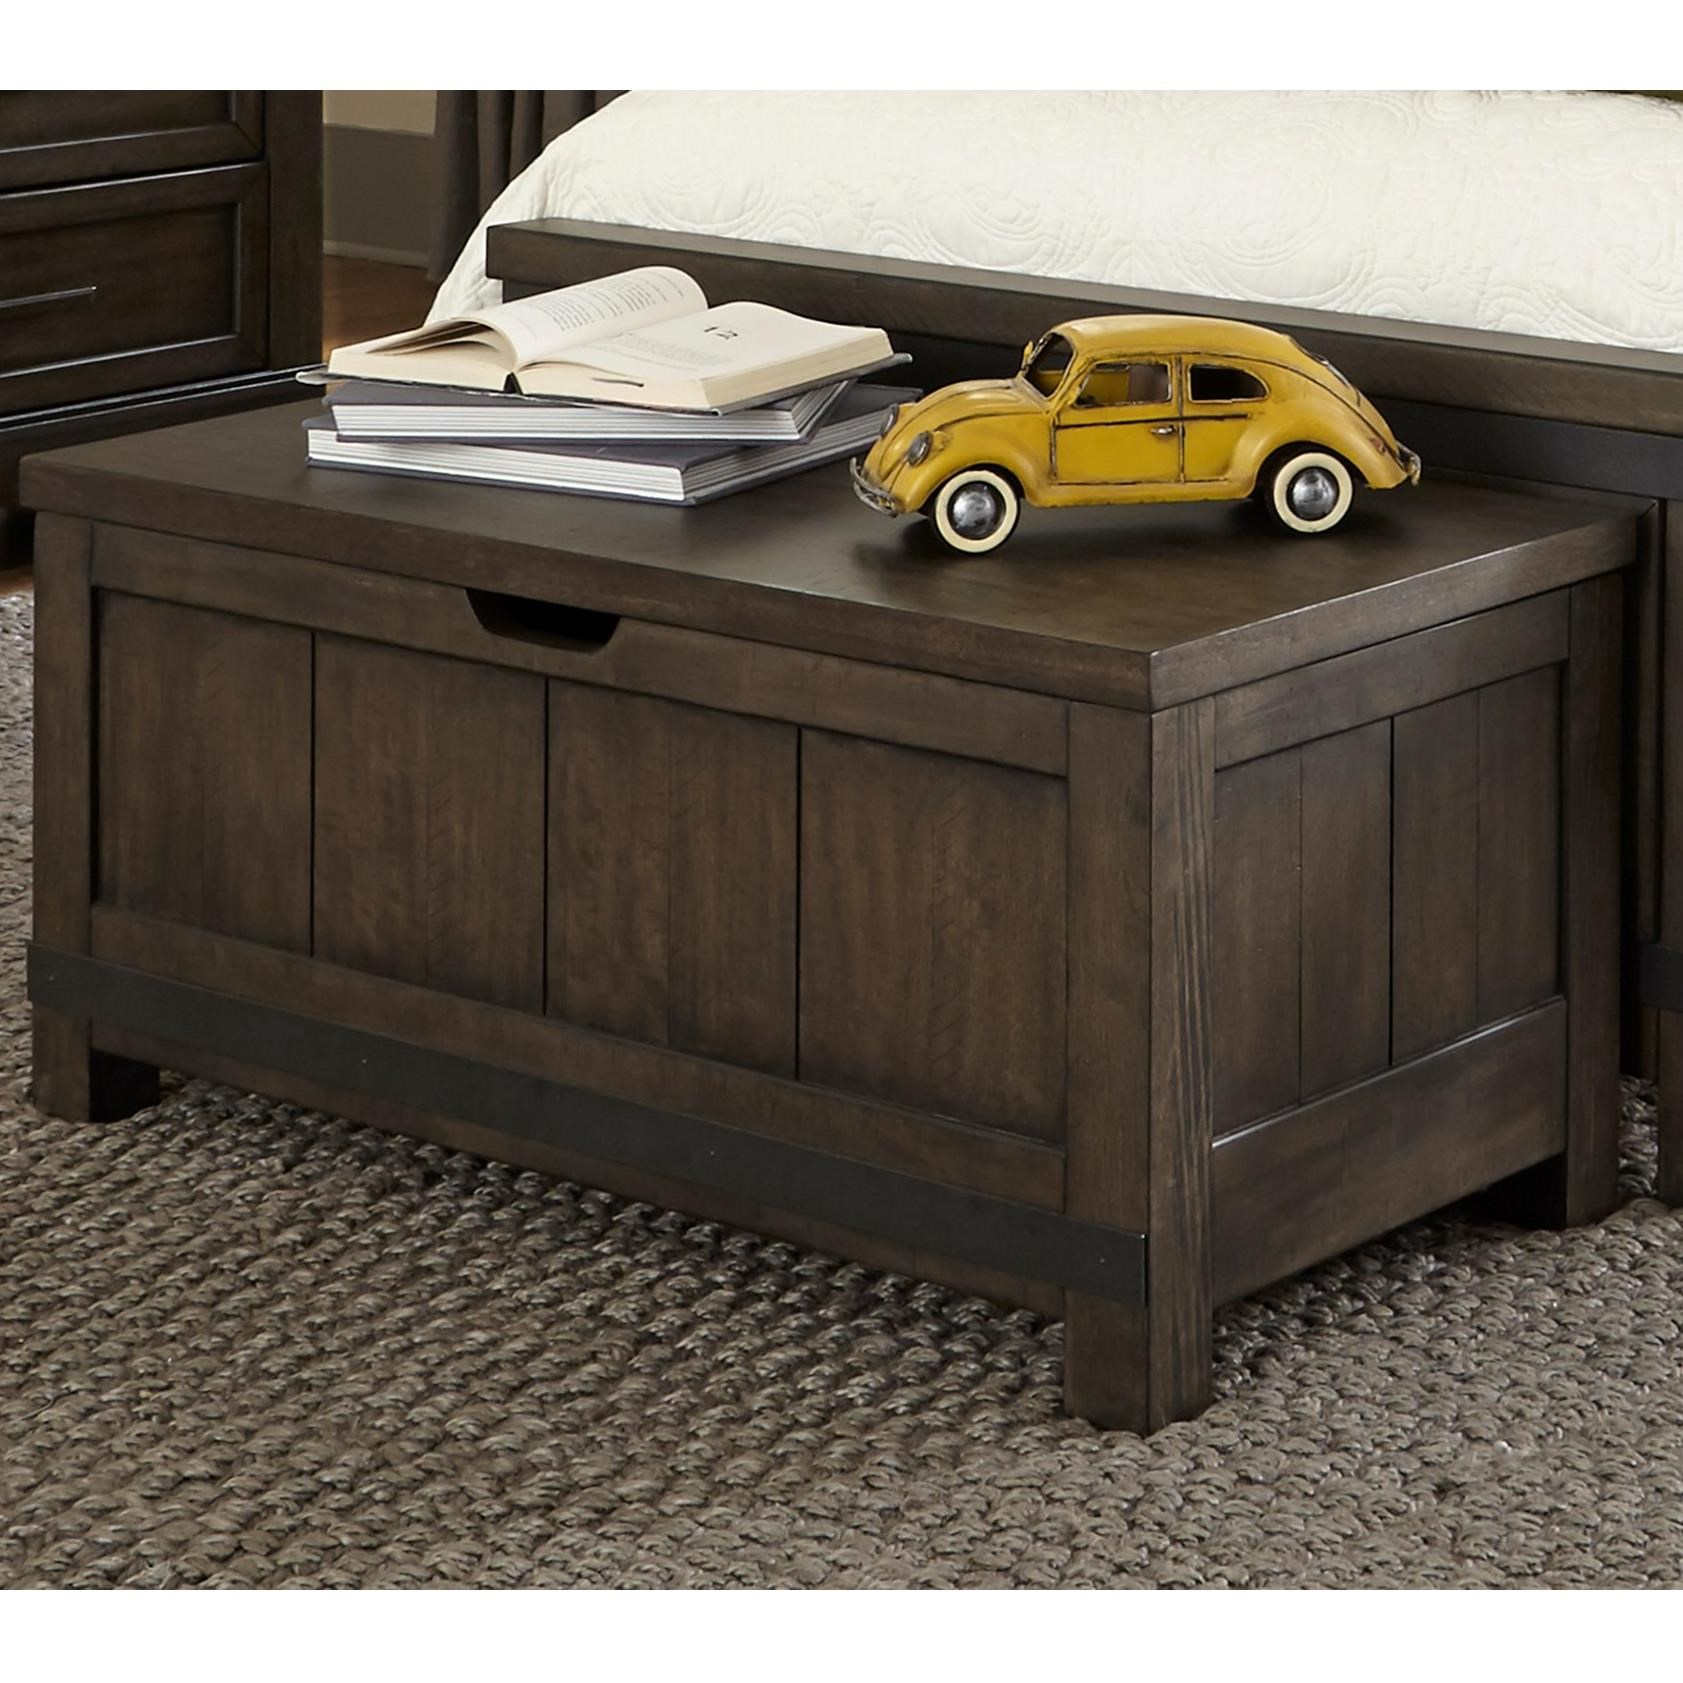 Thornwood Hills Toy Chest Bench by Libby at Walker's Furniture